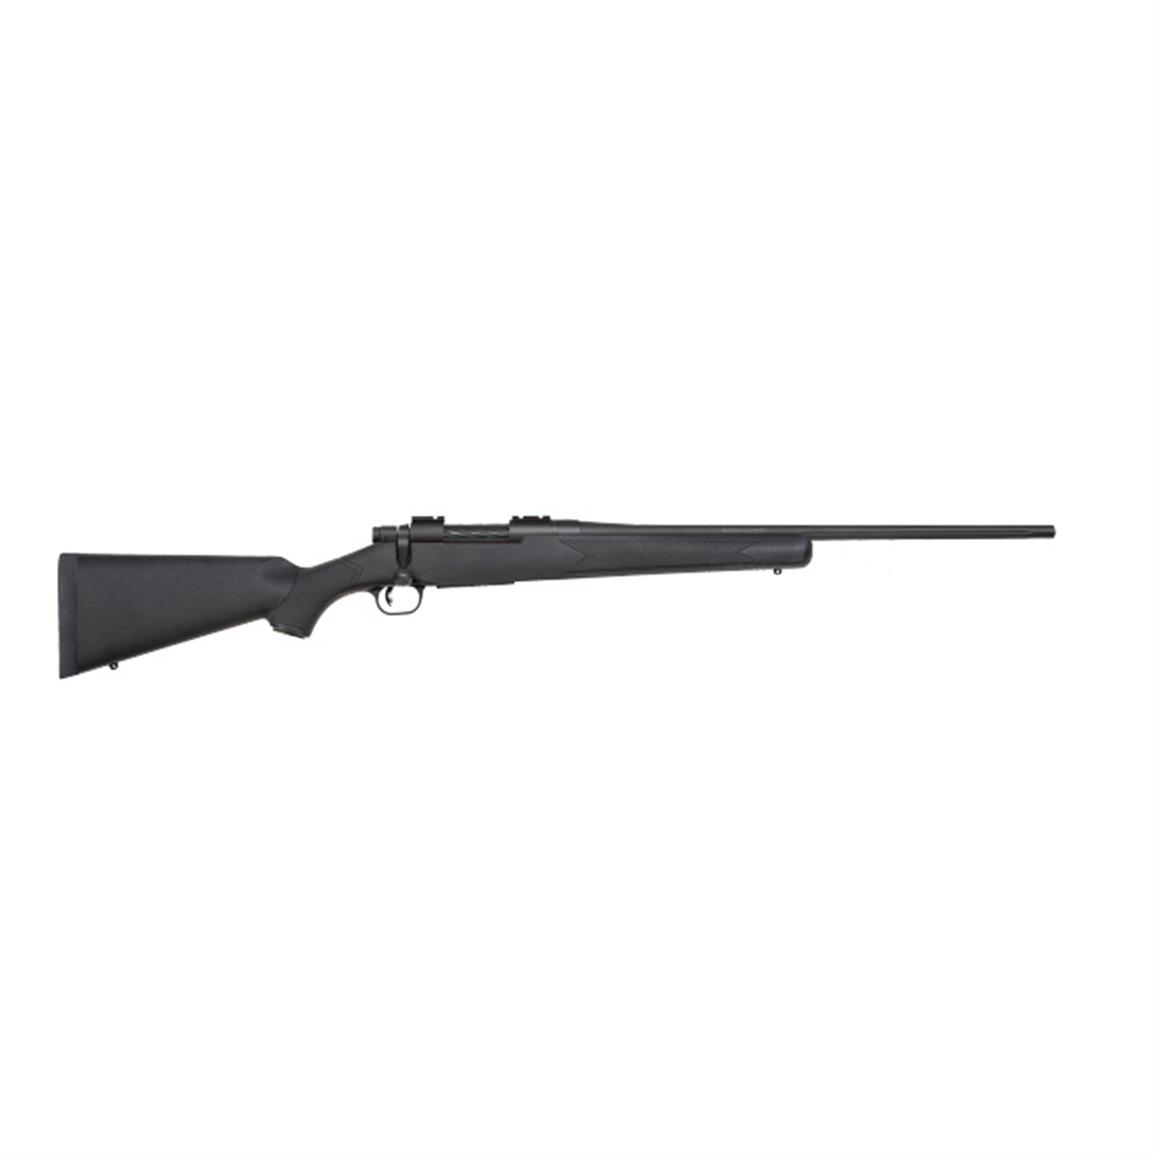 "Mossberg Patriot, Bolt Action, .243 Winchester, Centerfire, 22"" Barrel, 5 Rounds"